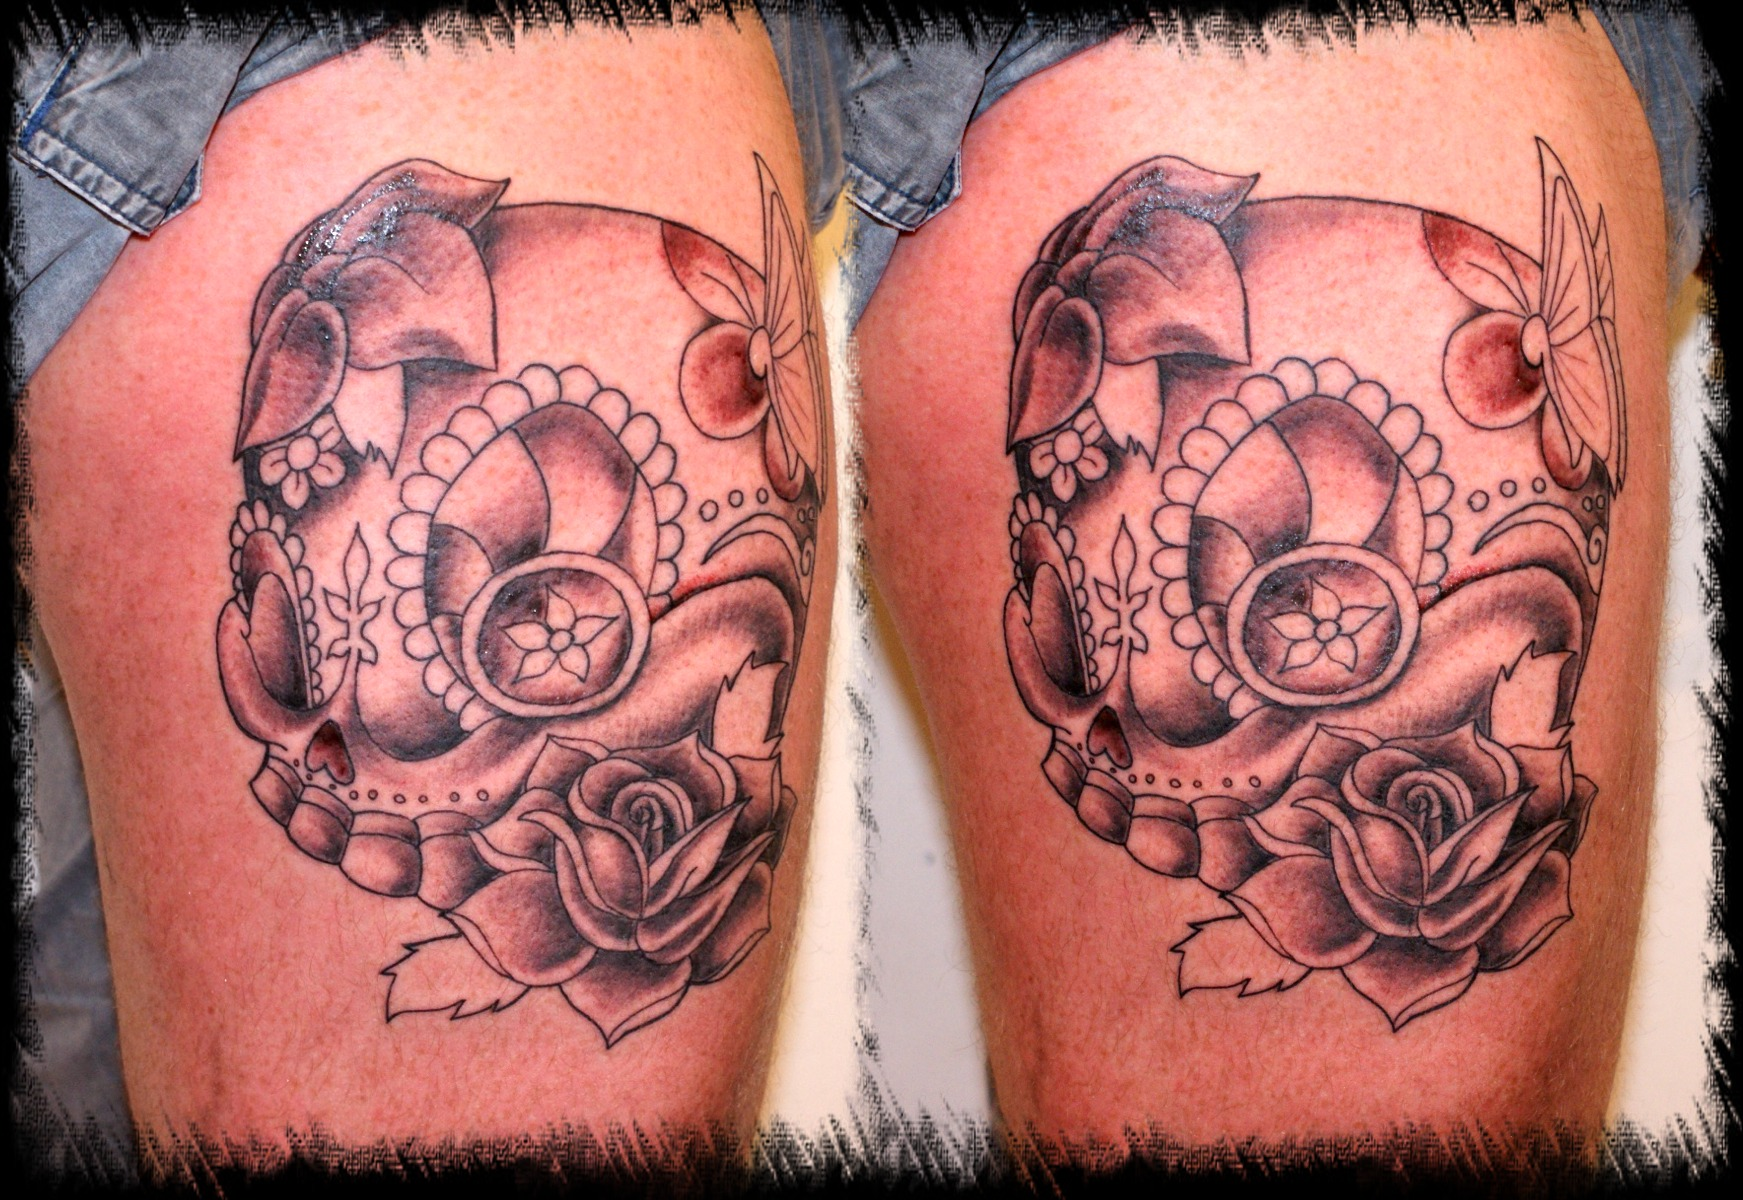 New school pirate skull tattoo - photo#9